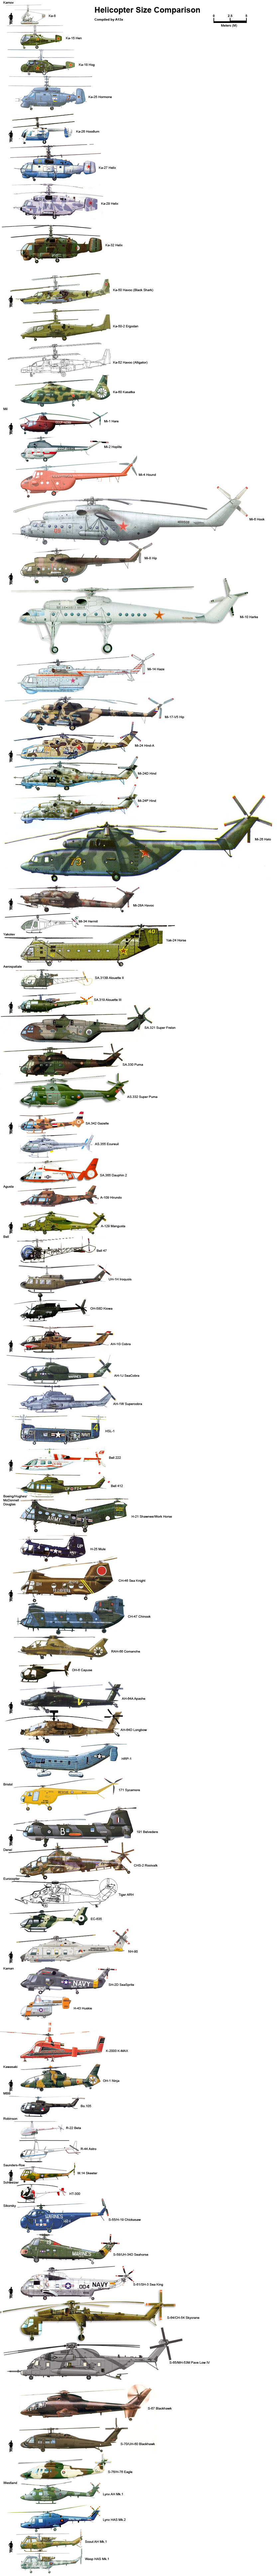 comparaison-taille-helicoptere.jpg